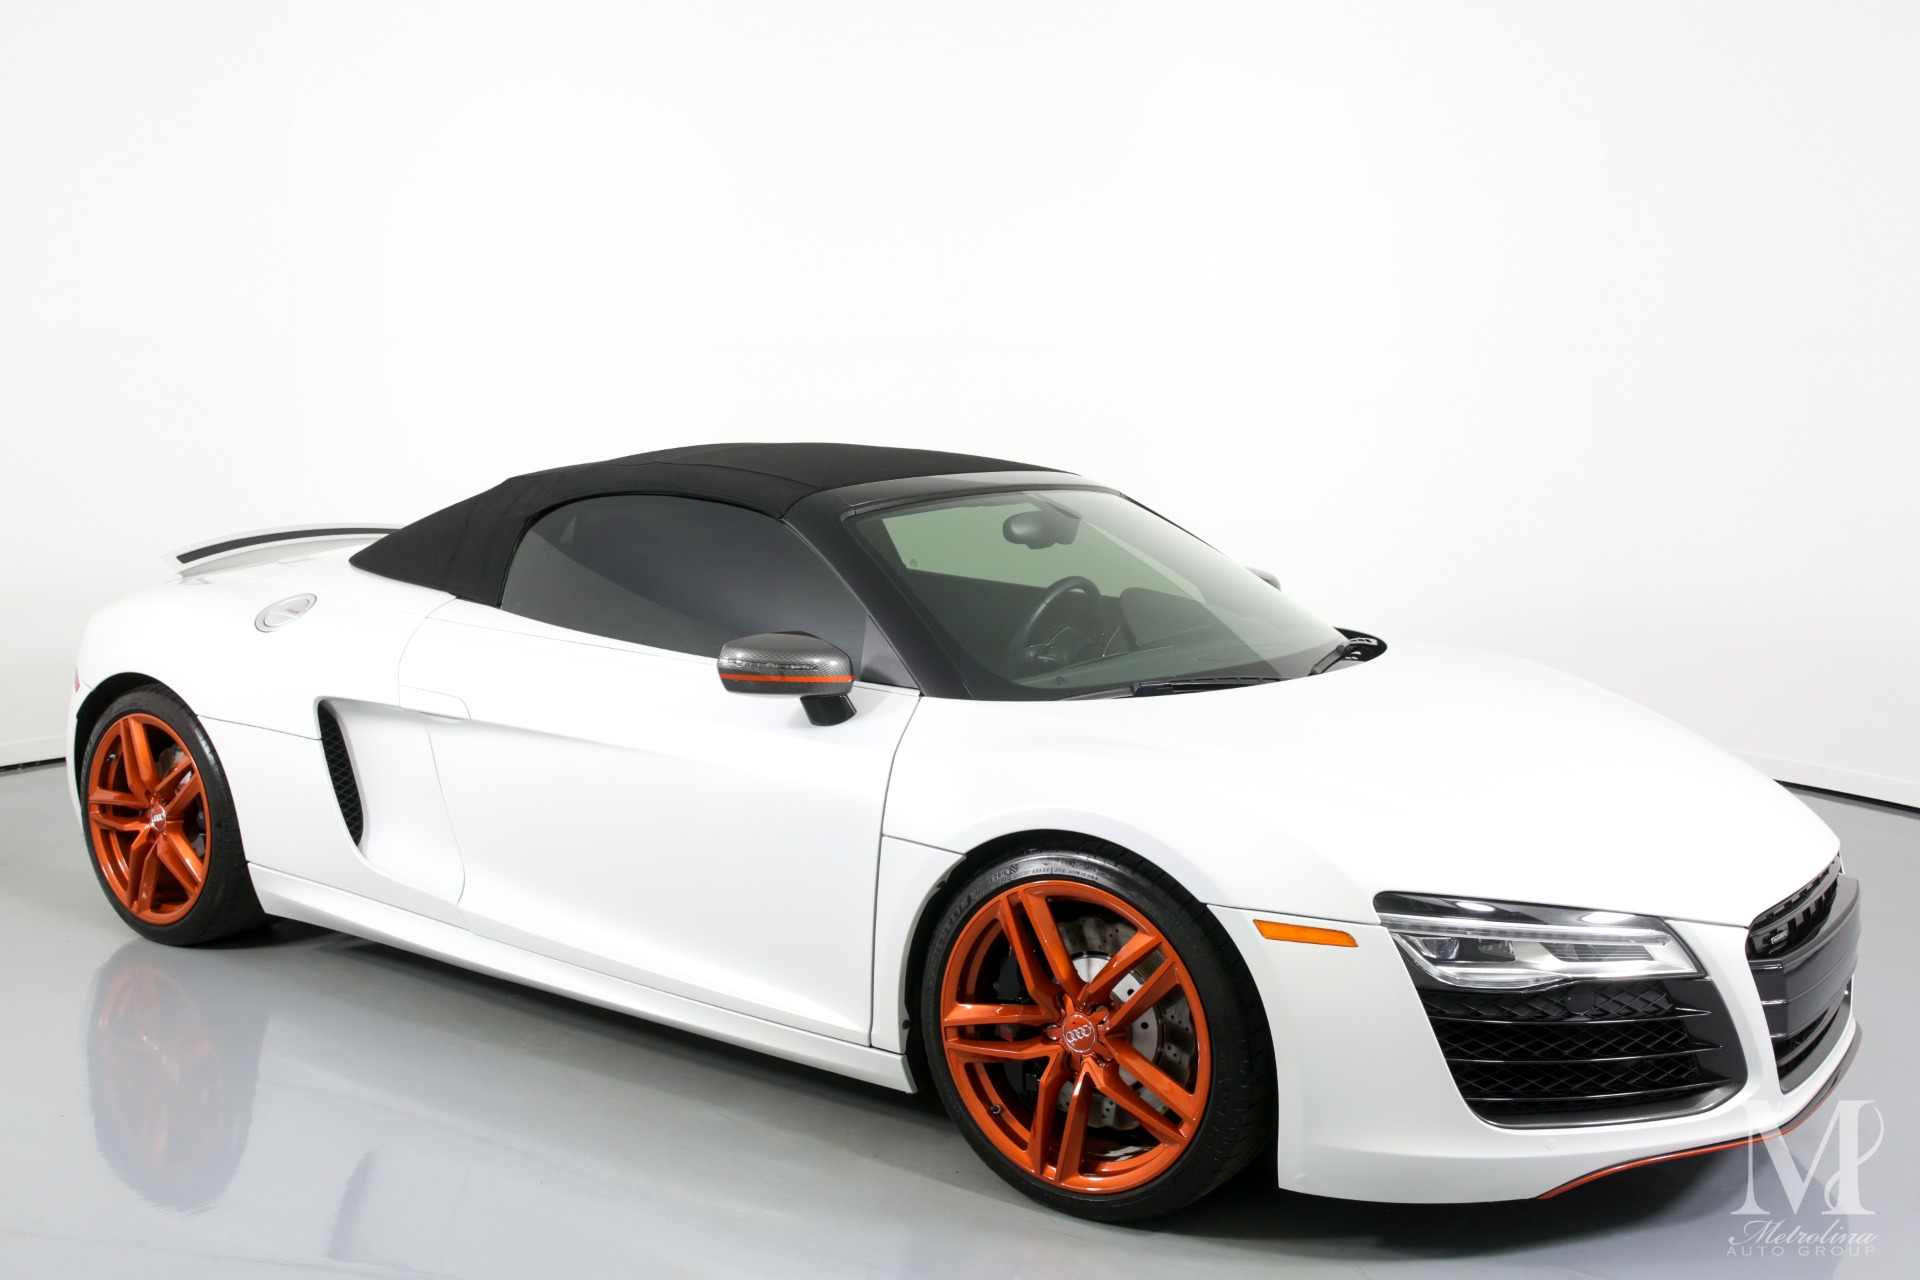 Used 2014 Audi R8 5.2 quattro Spyder for sale $86,996 at Metrolina Auto Group in Charlotte NC 28217 - 2